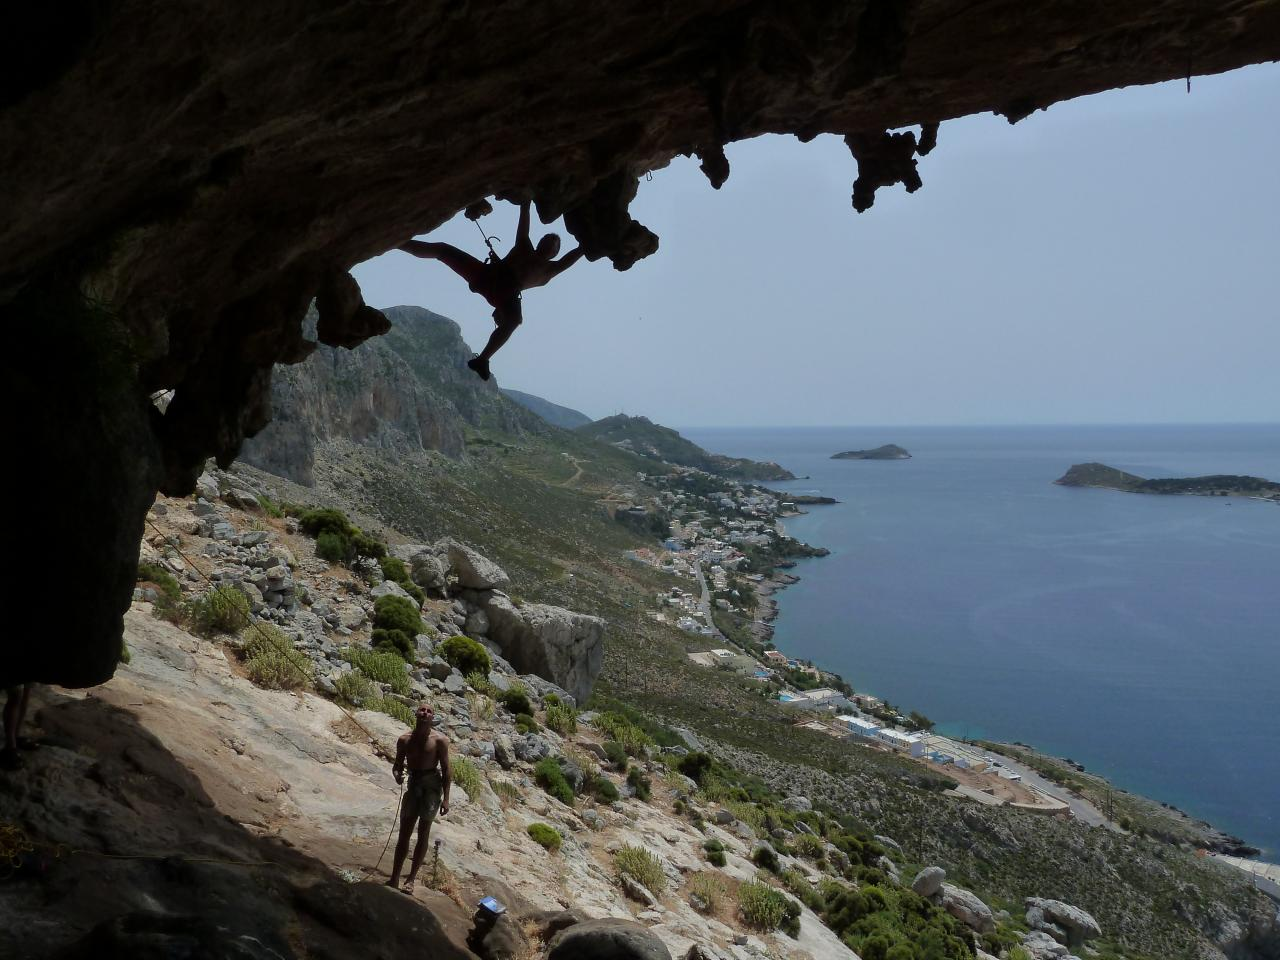 A picture from Kalymnos by Dario Pedrocchi